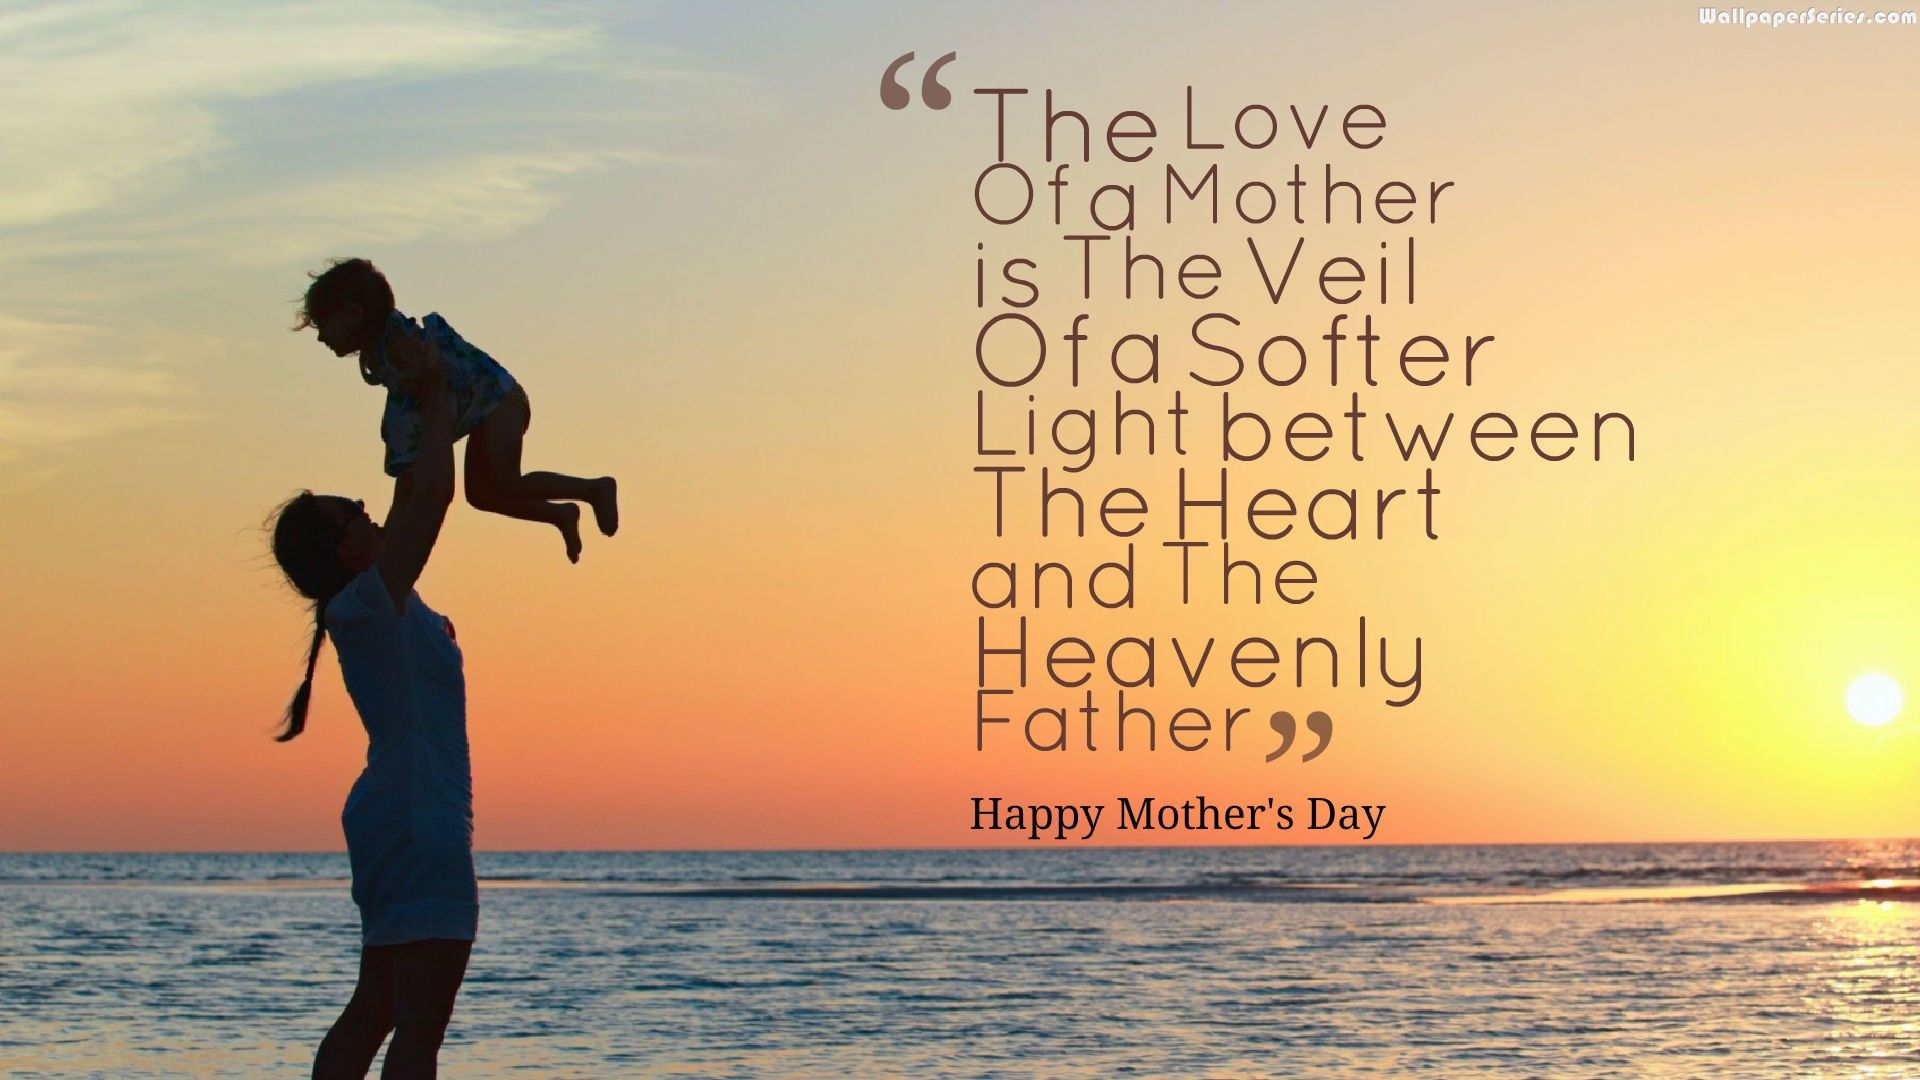 Mothers Day Quote Wallpapers - Wallpaper Cave